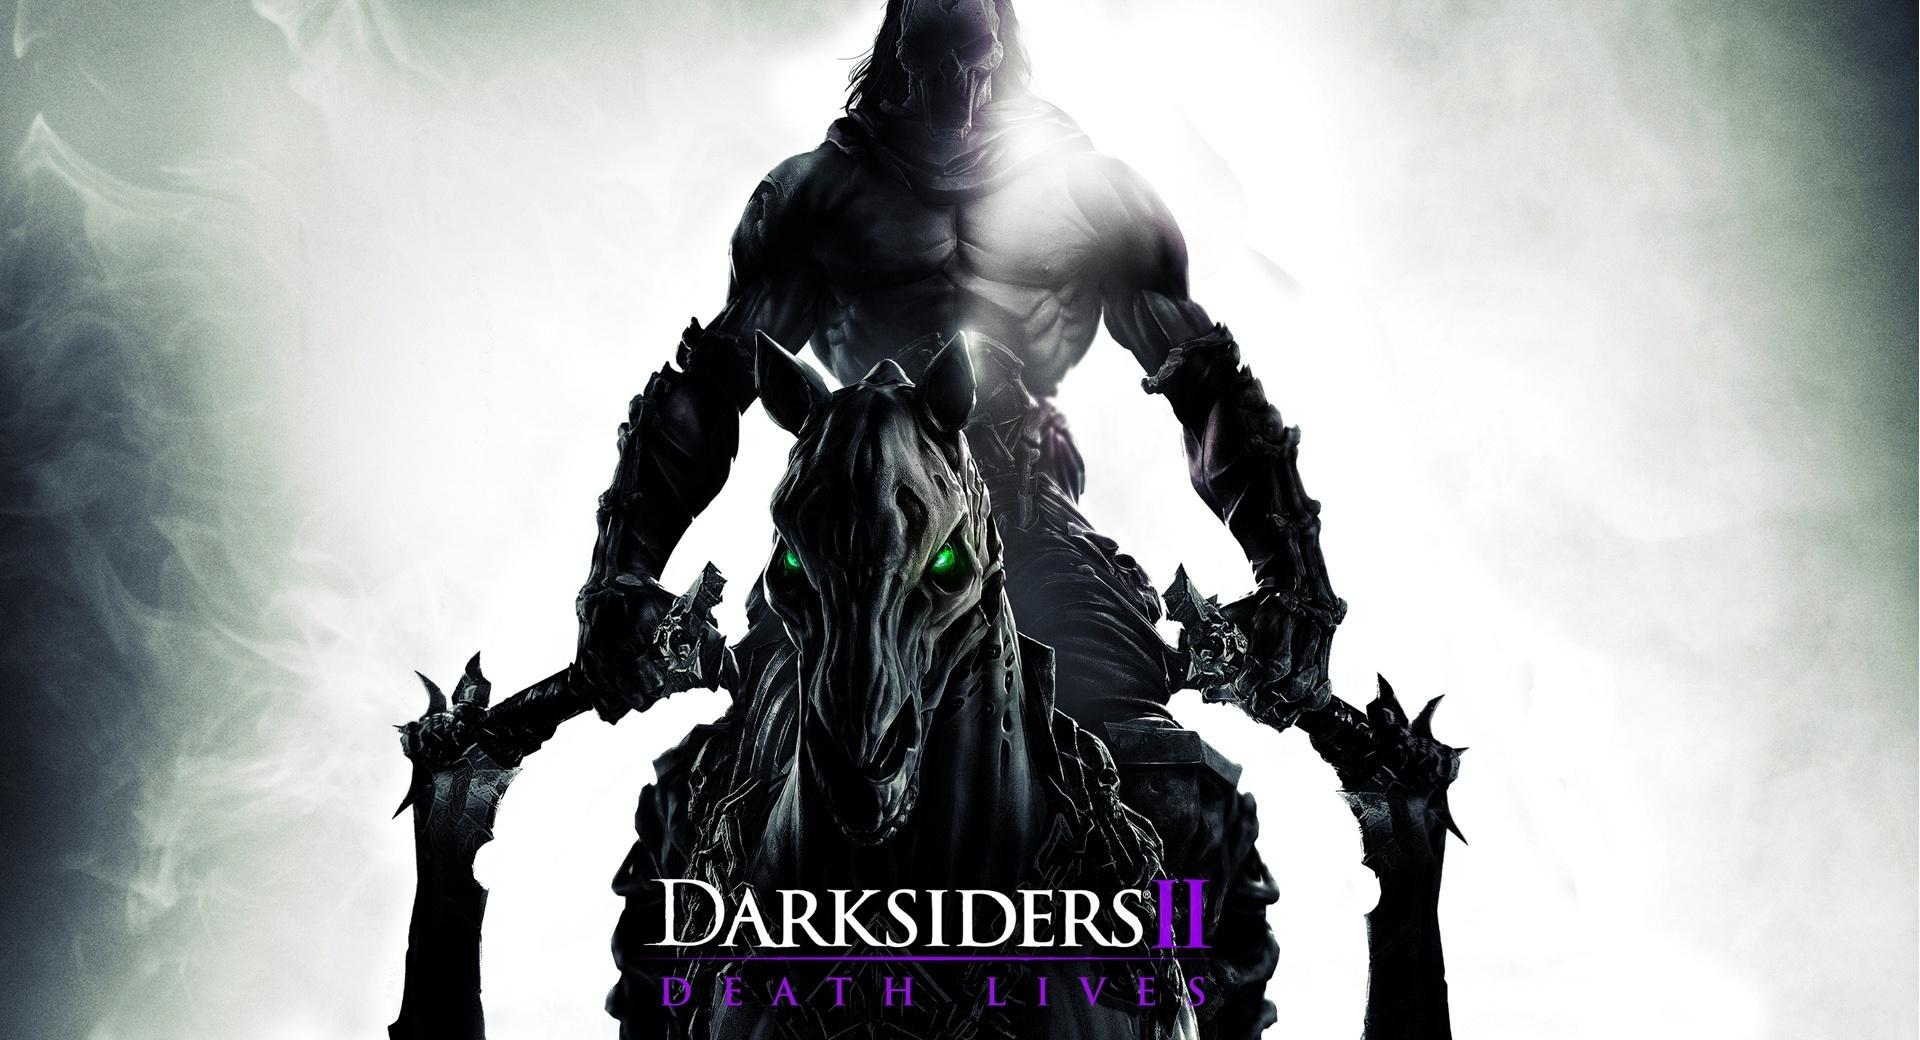 Darksiders II Death Lives wallpapers HD quality